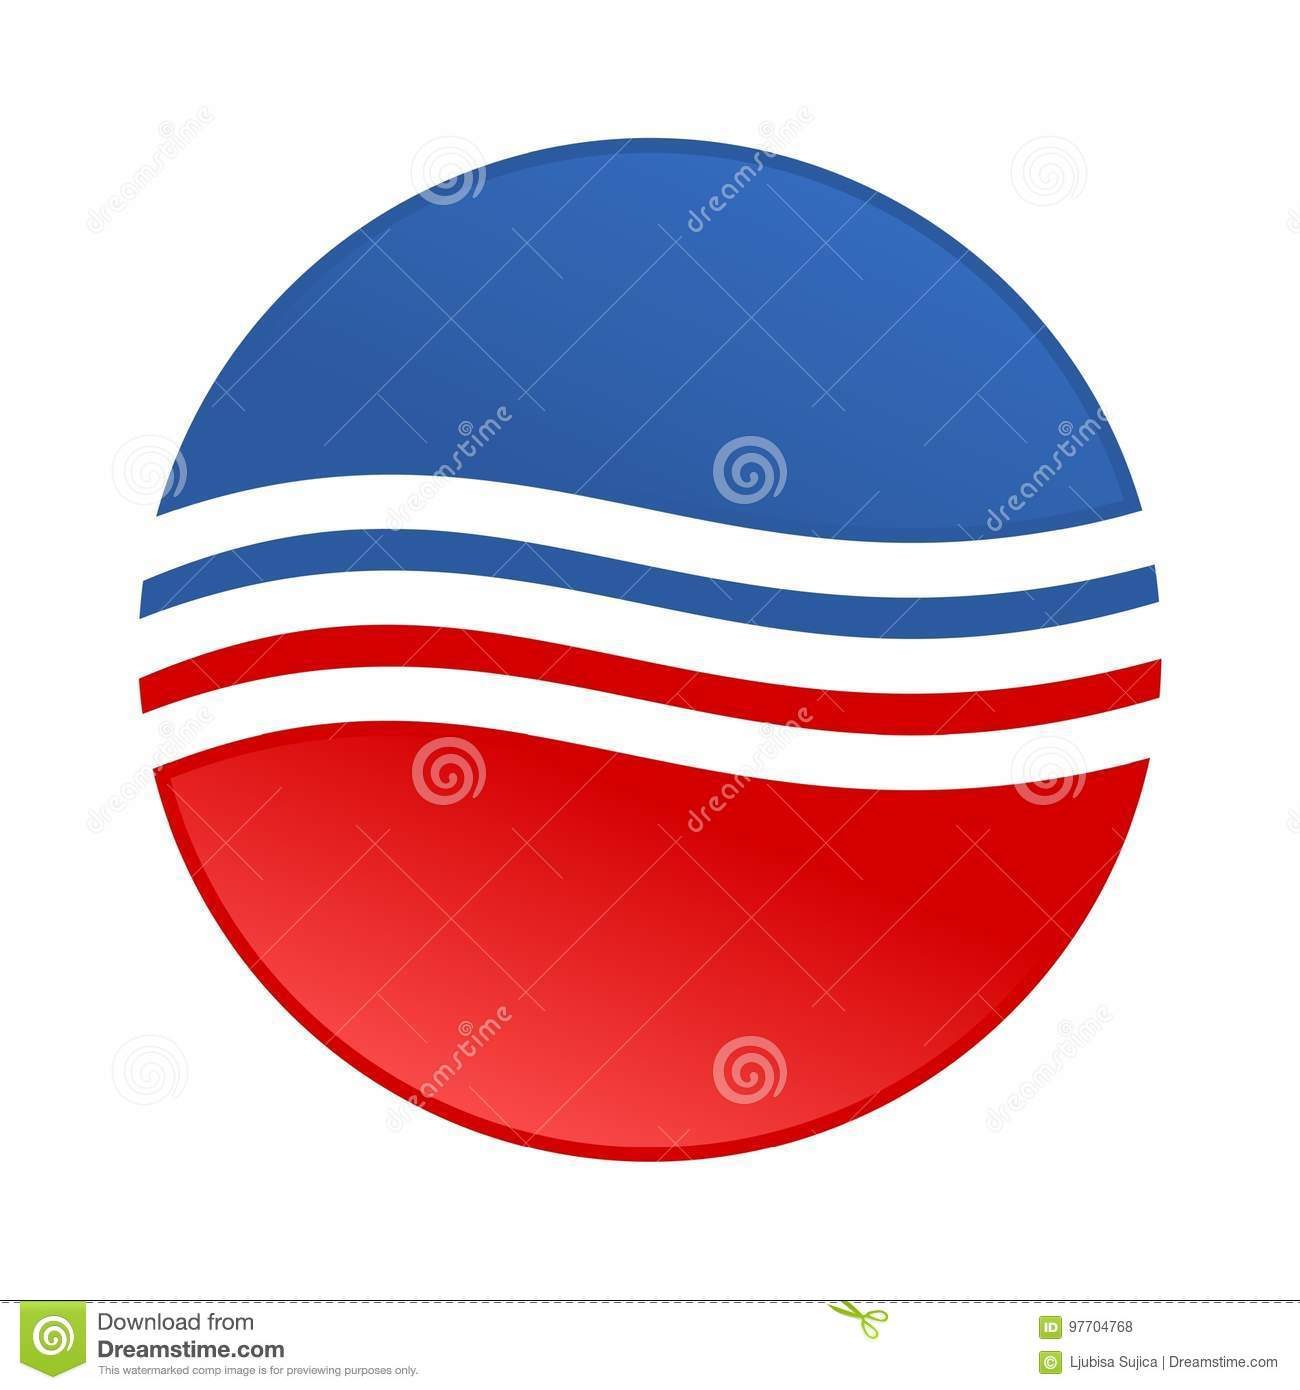 dc09639a013 Sticker USA flag - Simple Vector illustration. More similar stock  illustrations